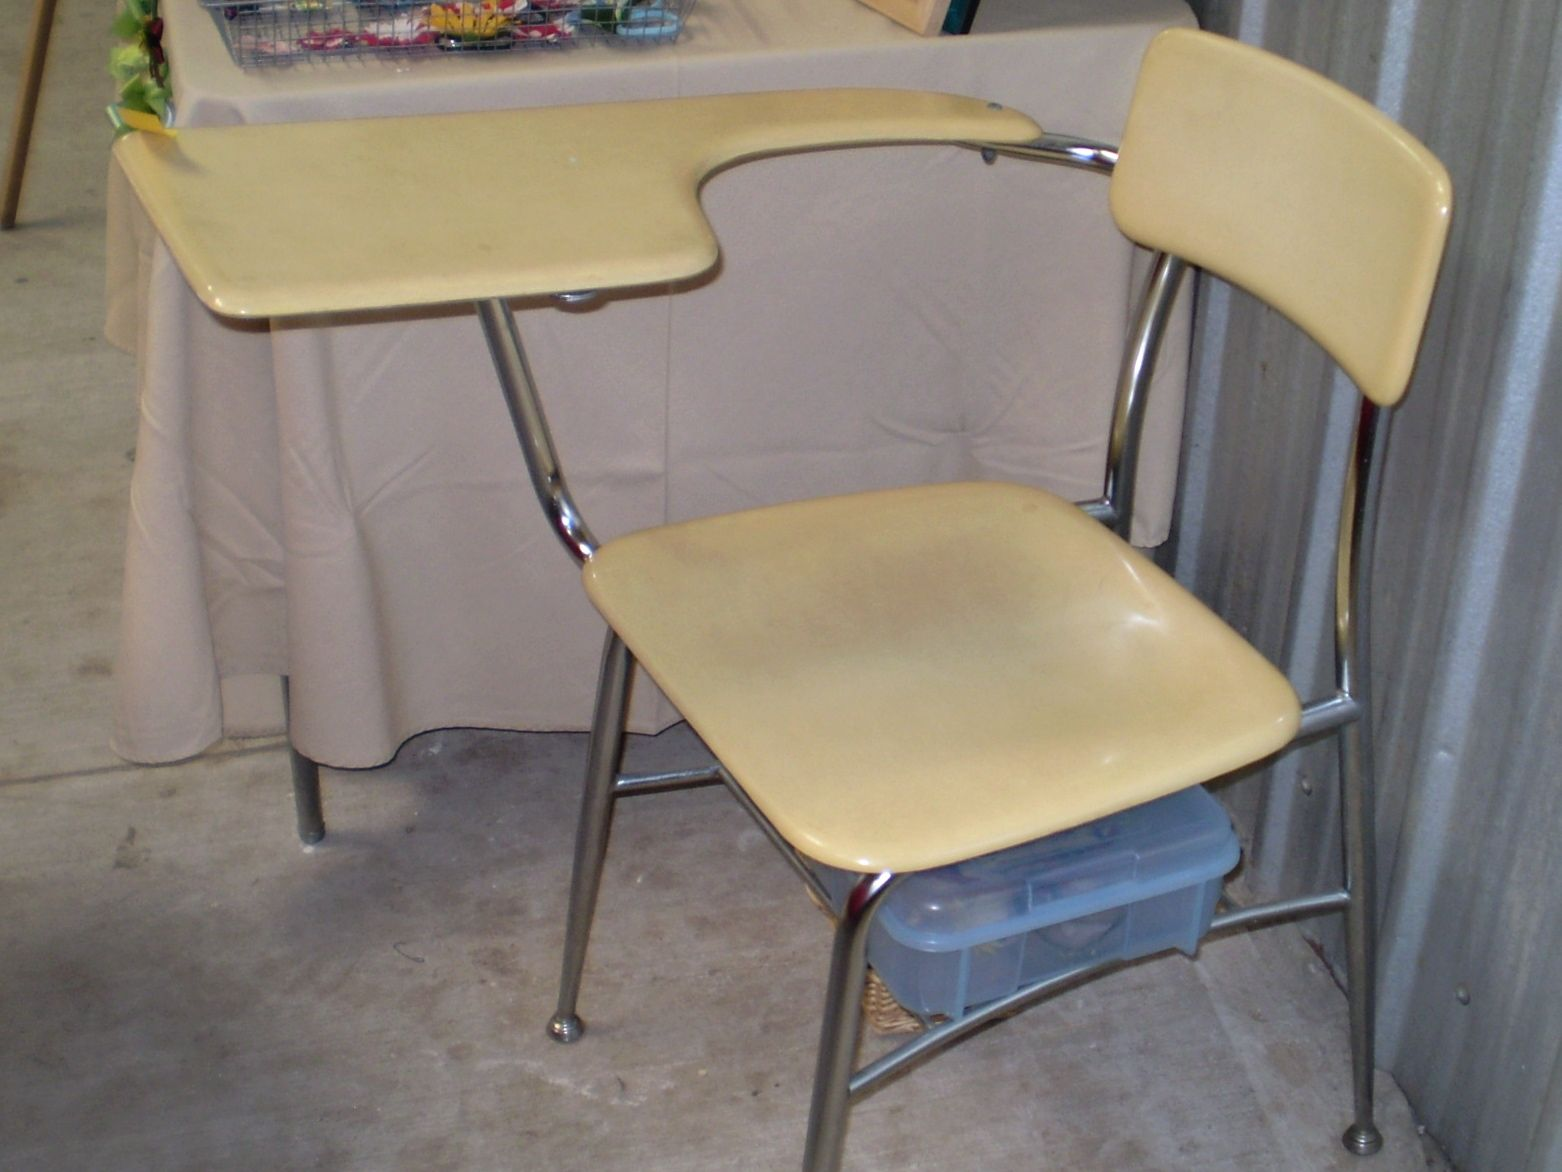 Desks With Chairs Attached Desk Seats Are In Much Demand Now All These Largely Used Offices Flats Housean